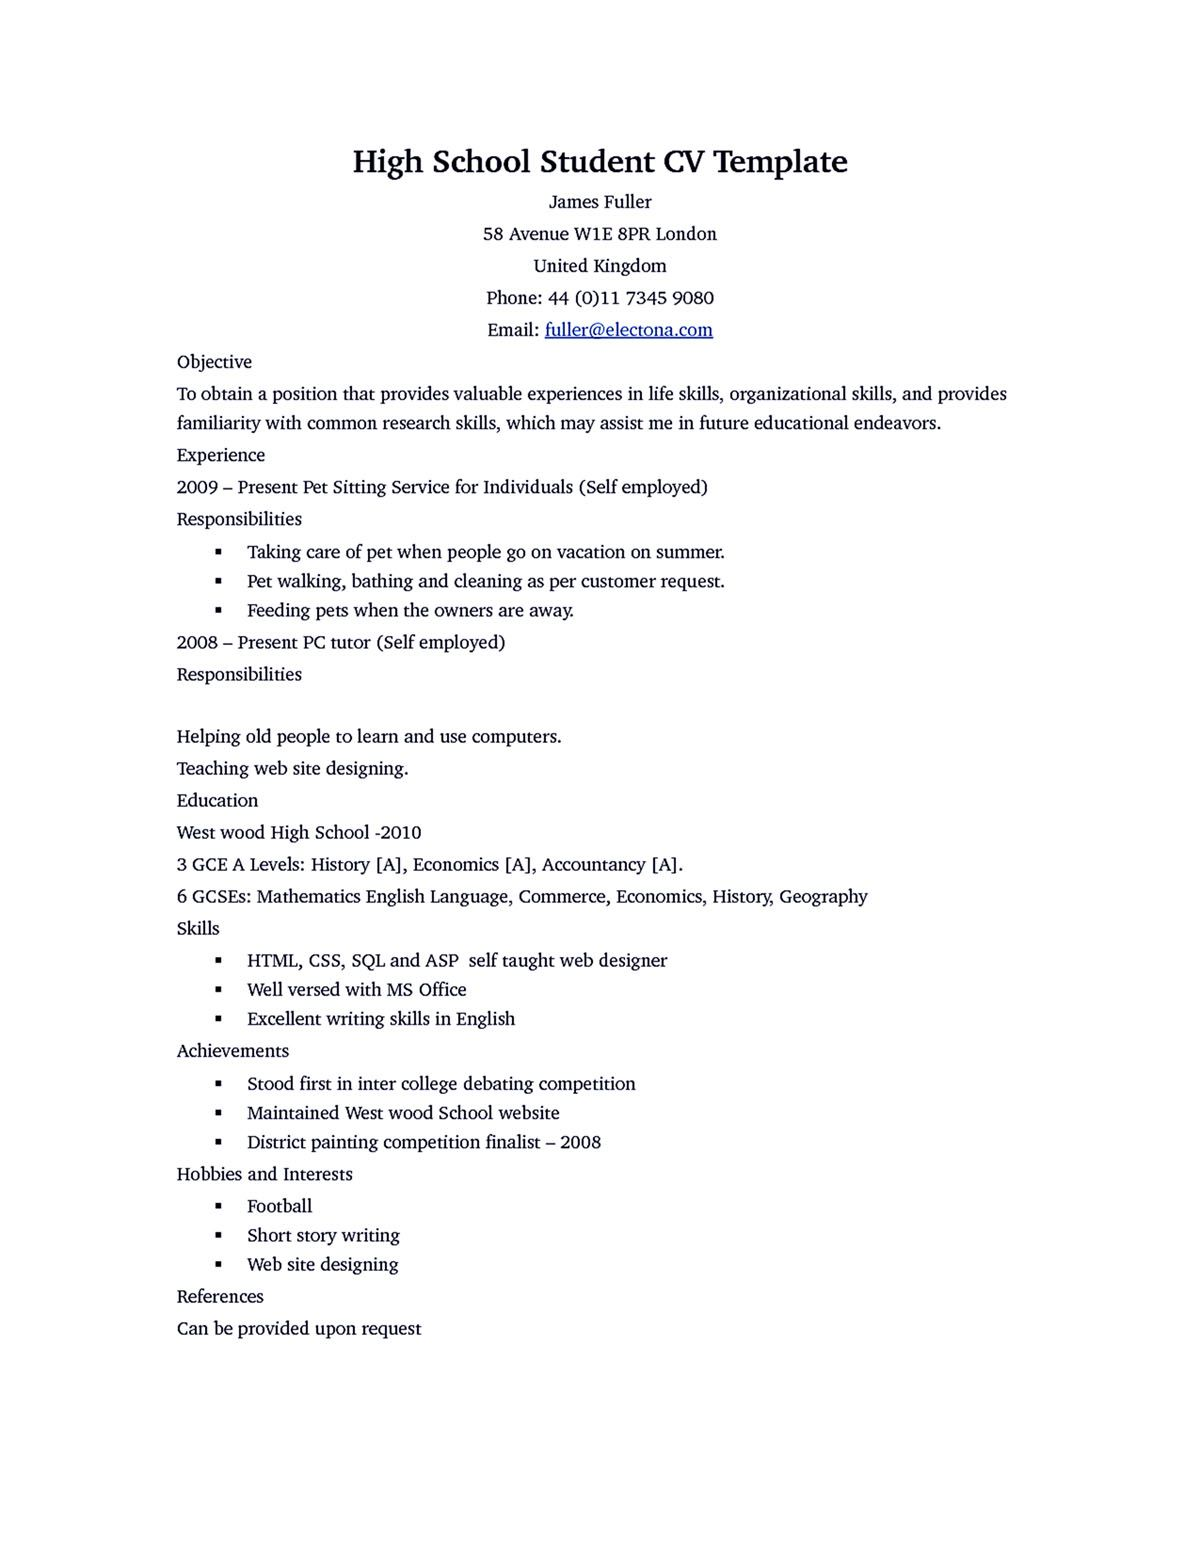 Academic Resume Sample Academic Resume Template Shows You How The Layout Of An Academic